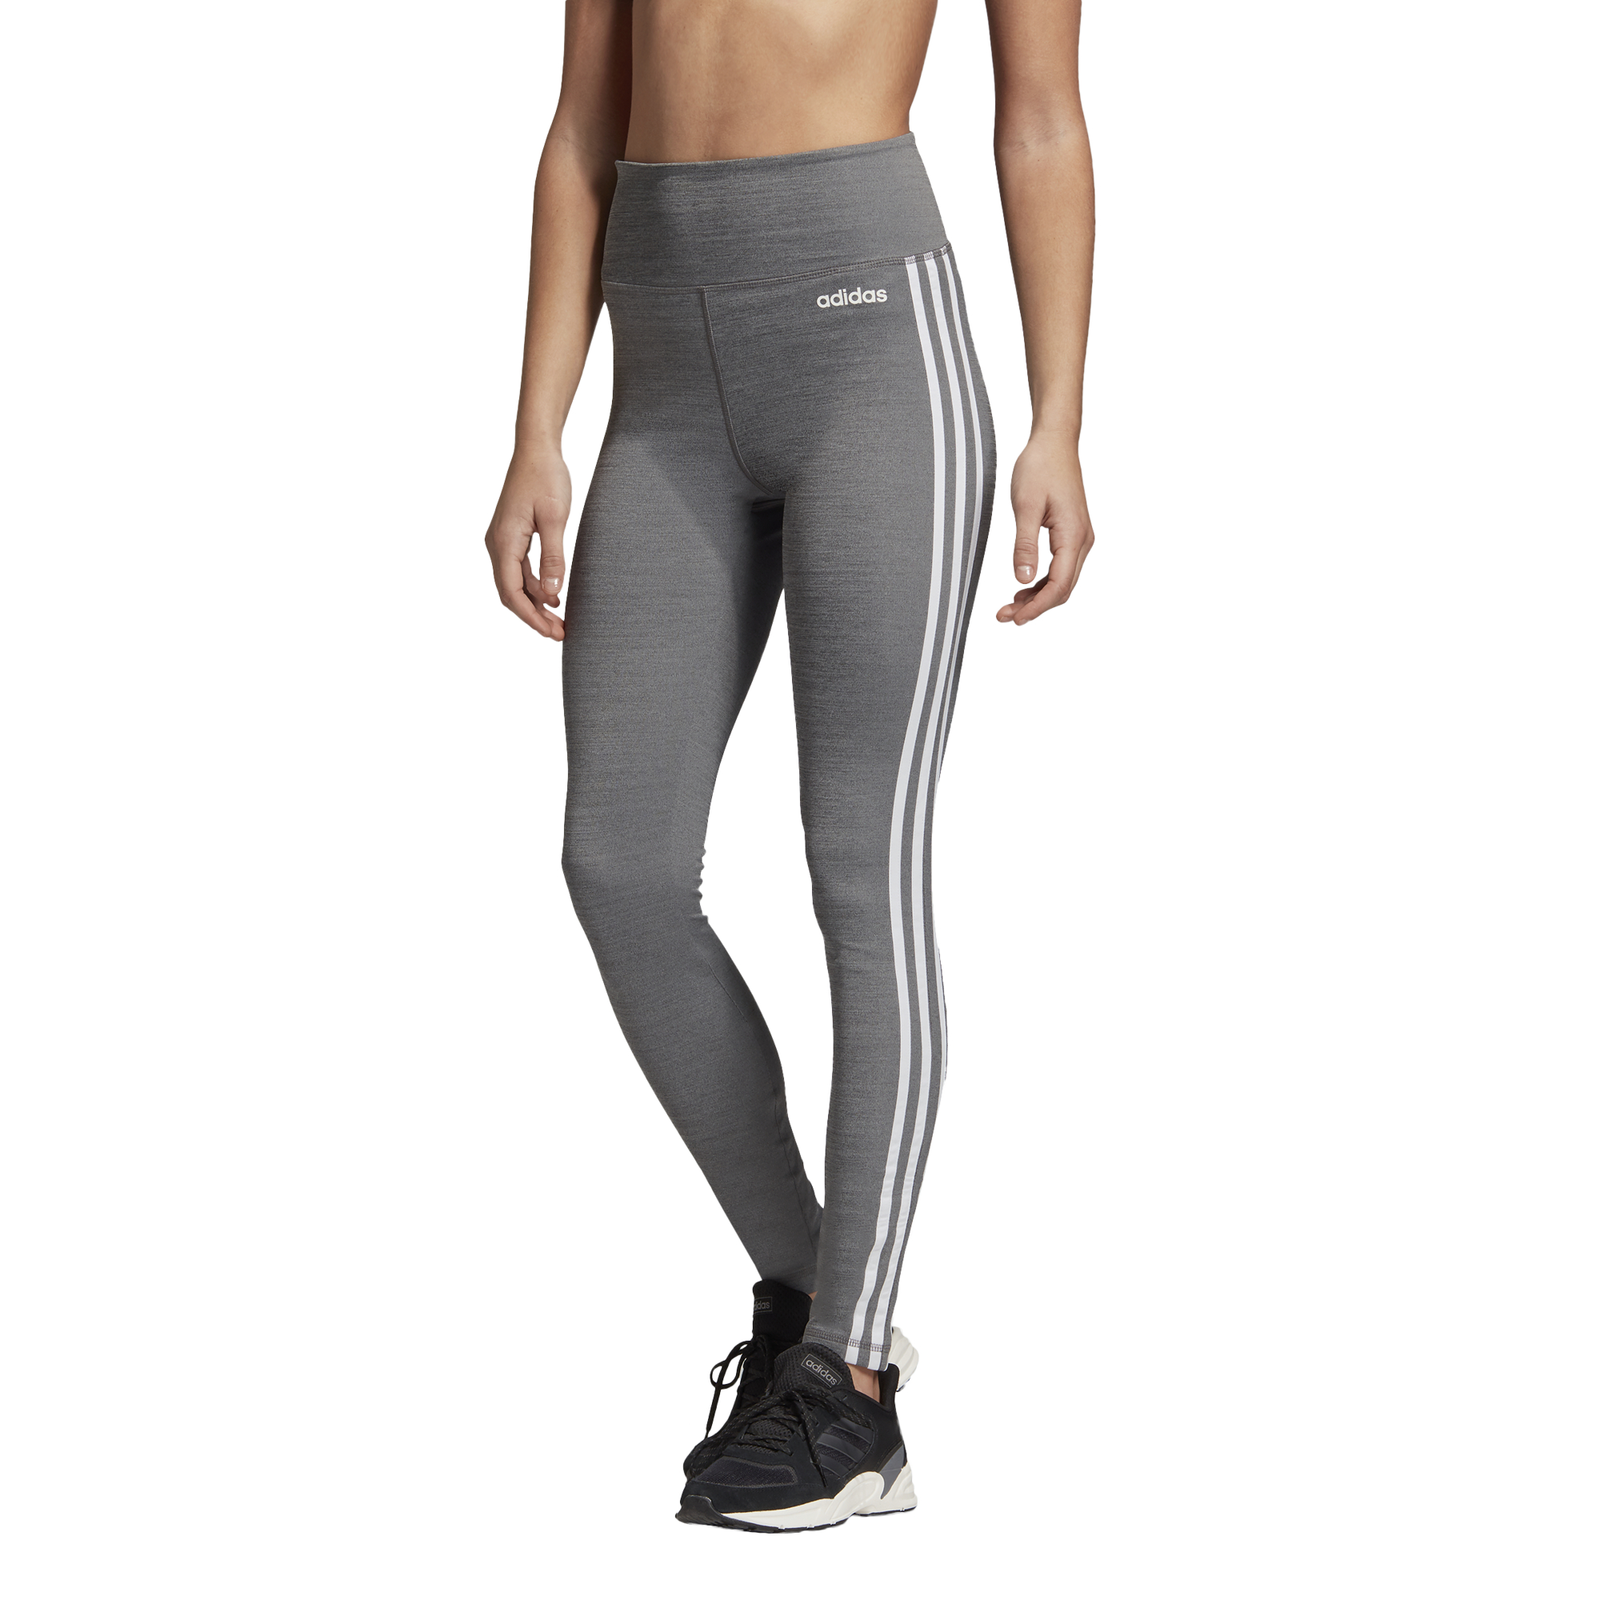 Details about Adidas Performance Womens Fitness Leggings D2M 3S High Rise Long Tight Grey show original title